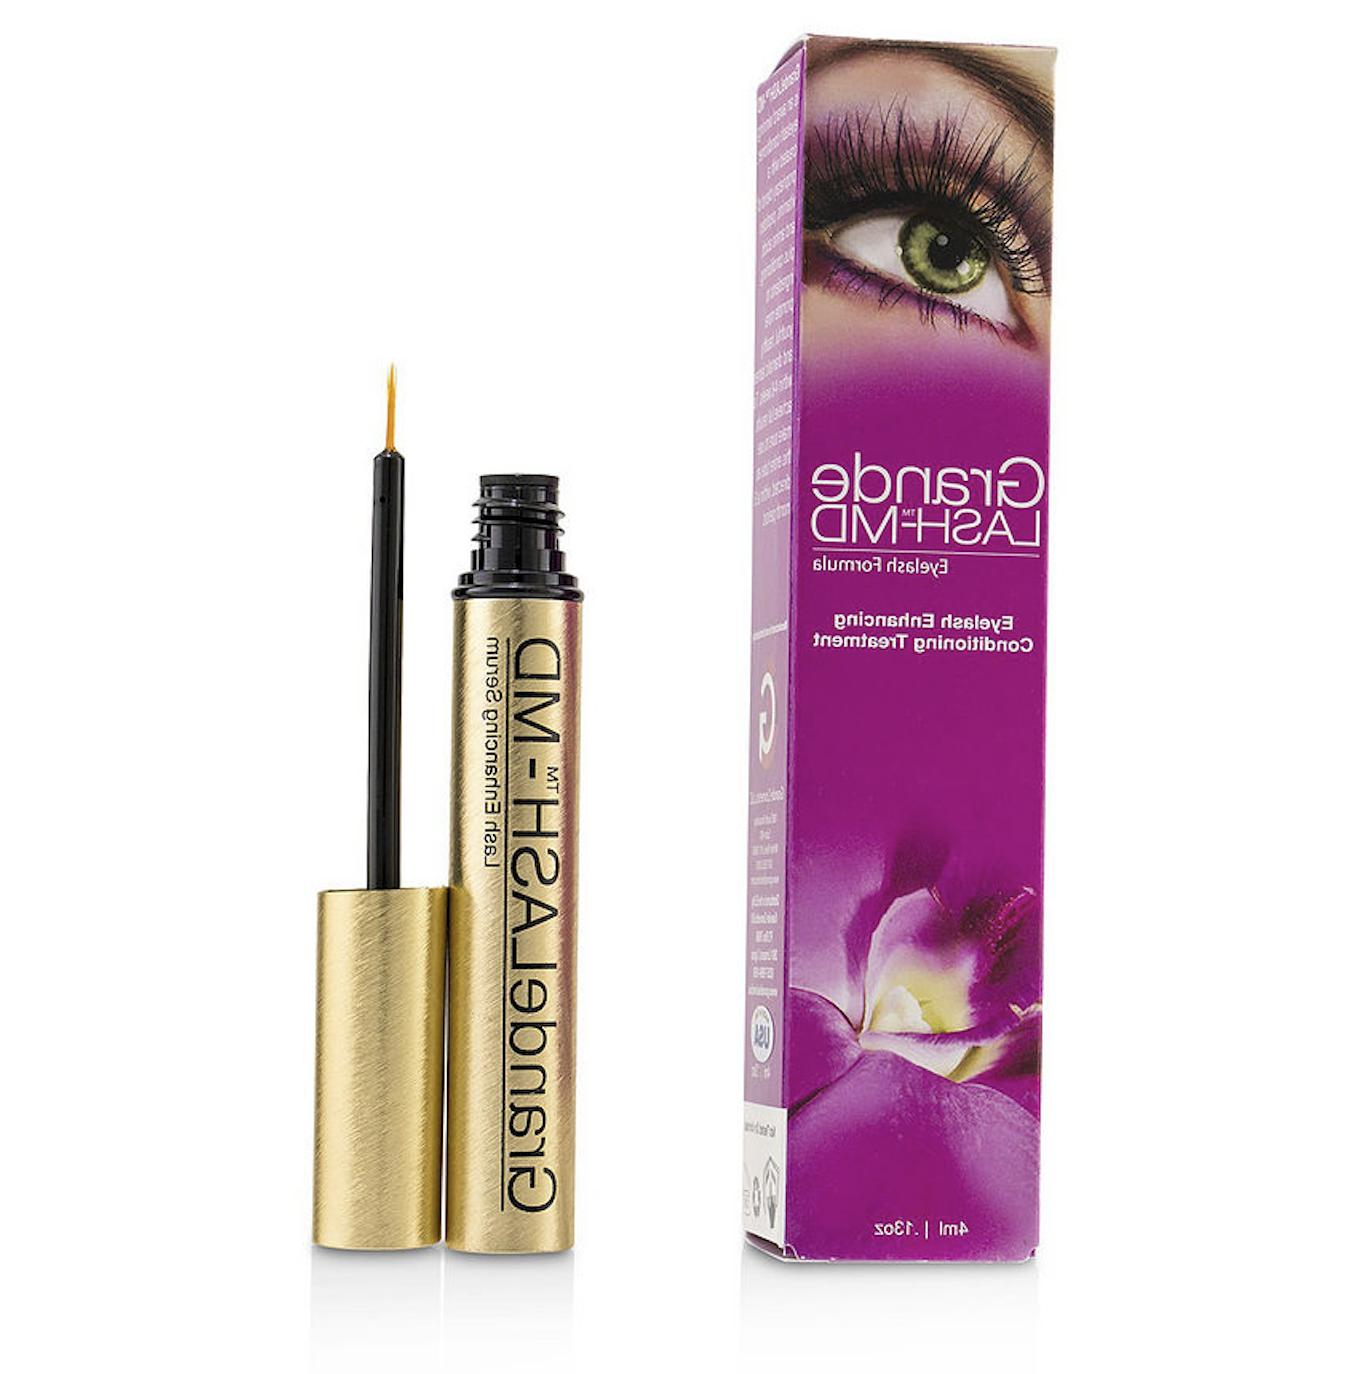 brand new grandelash md grande lash enhancing